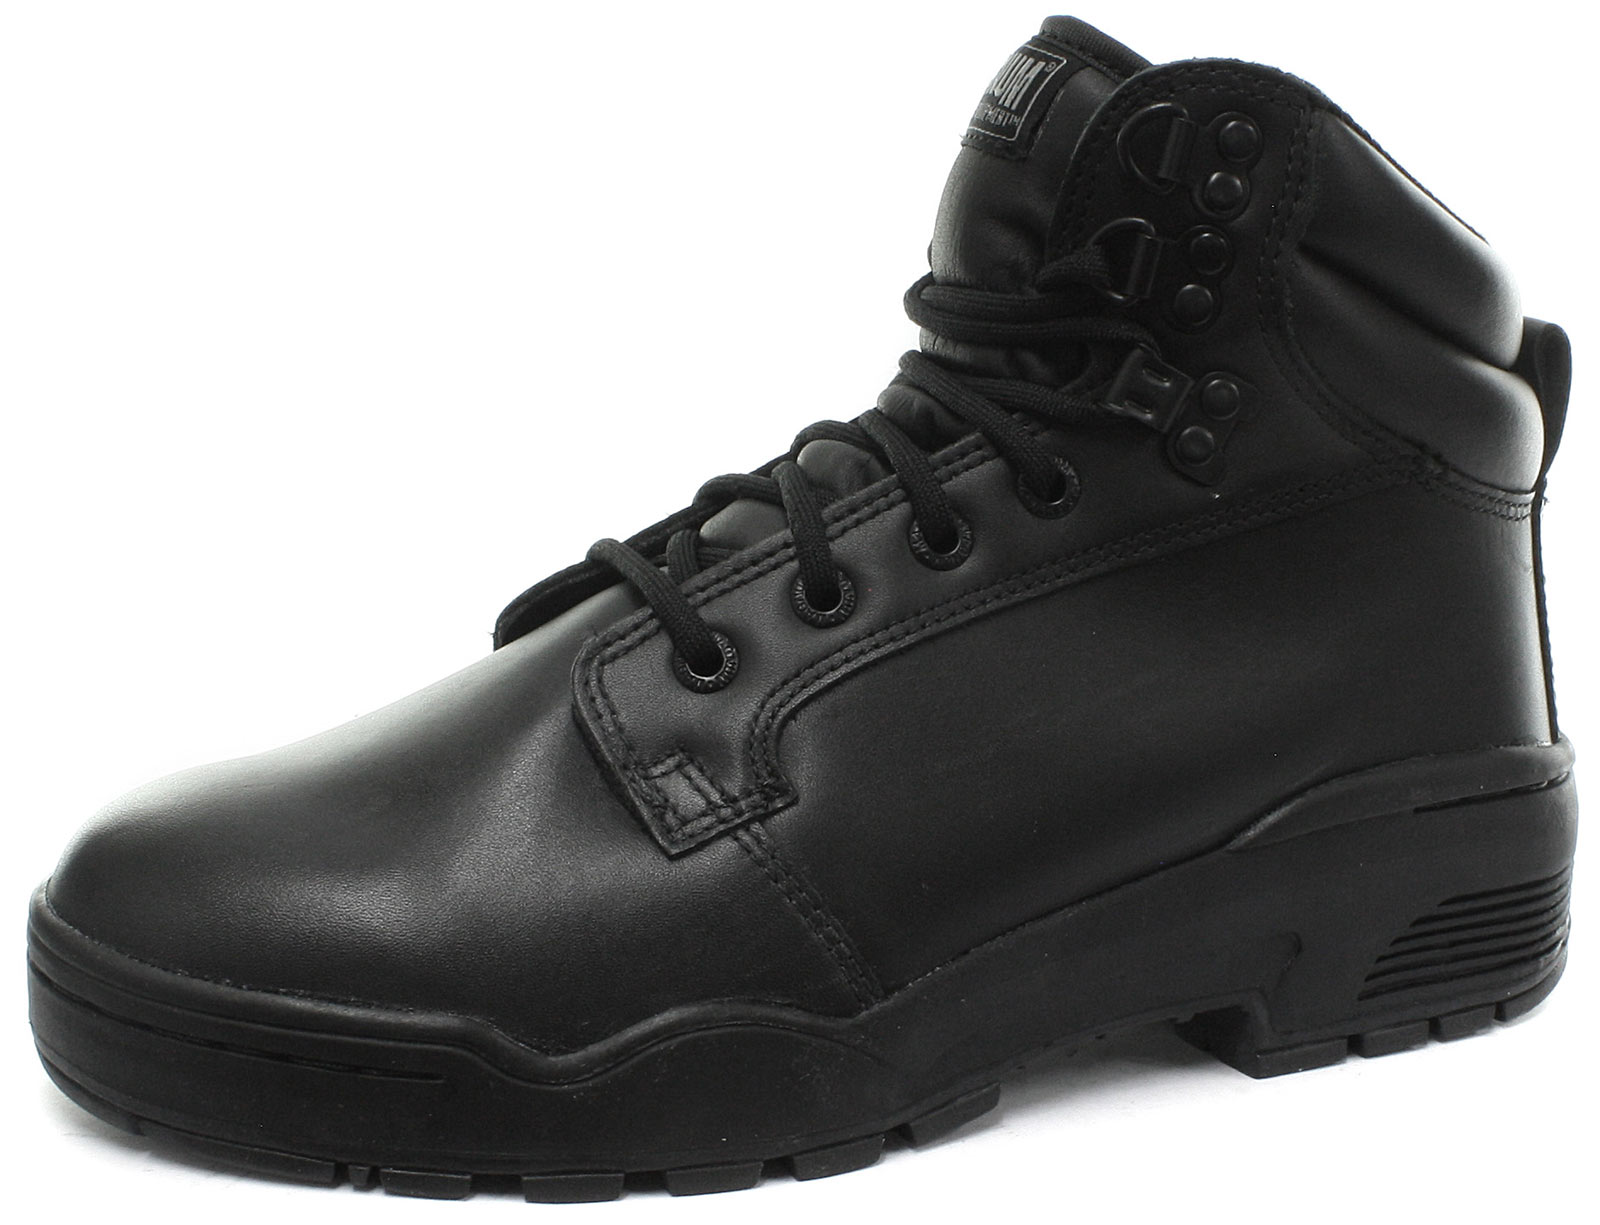 New Magnum M964A Patrol Unisex Cen Military / Security Unisex Patrol Stiefel ALL SIZES 5accd1